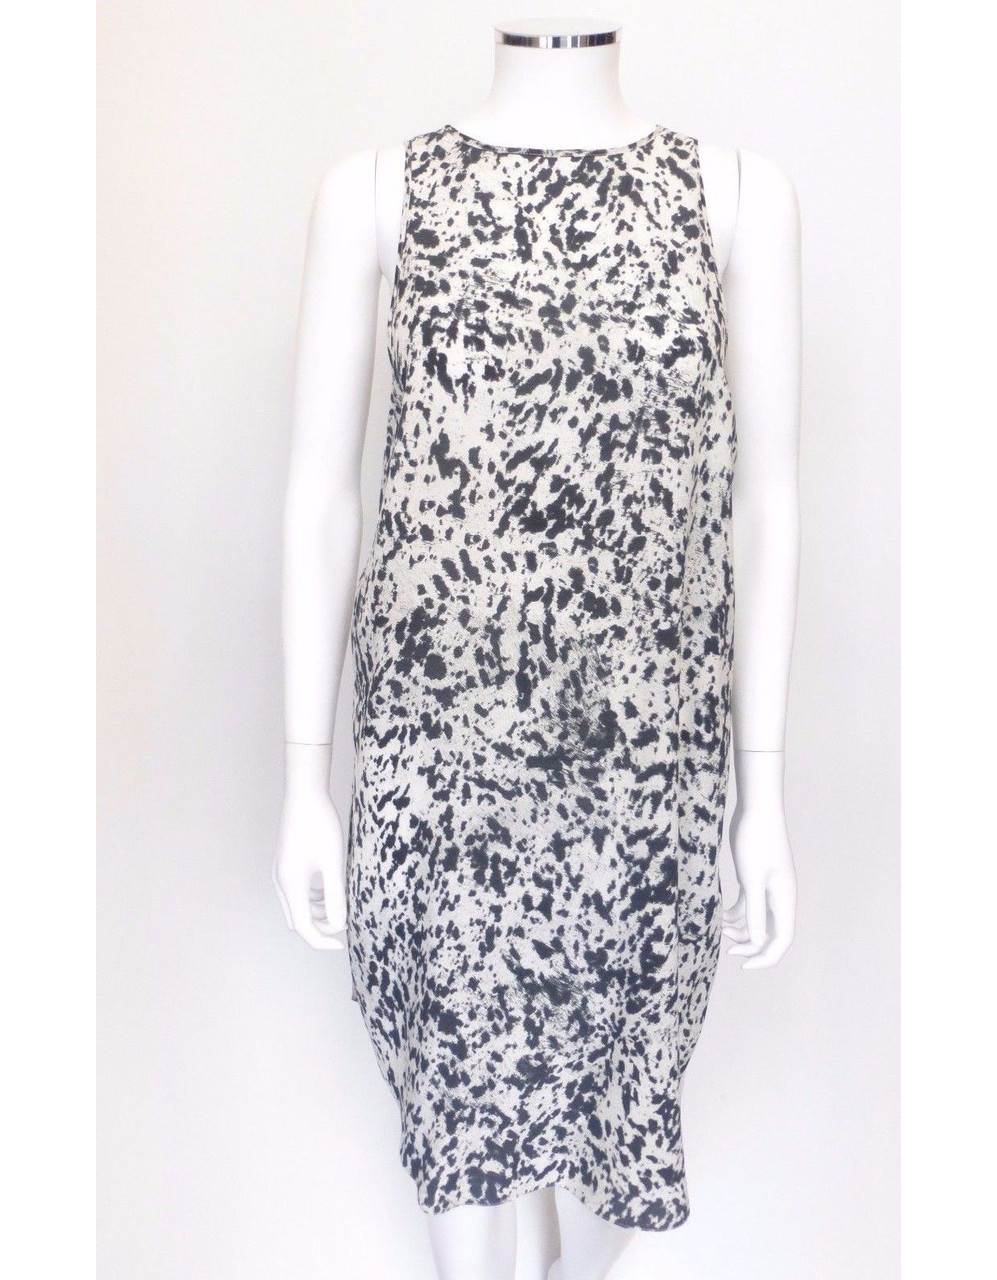 Phillip Lim Black Gray Animal Print Silk Sundress Sz 2 Eur 36 Leprix